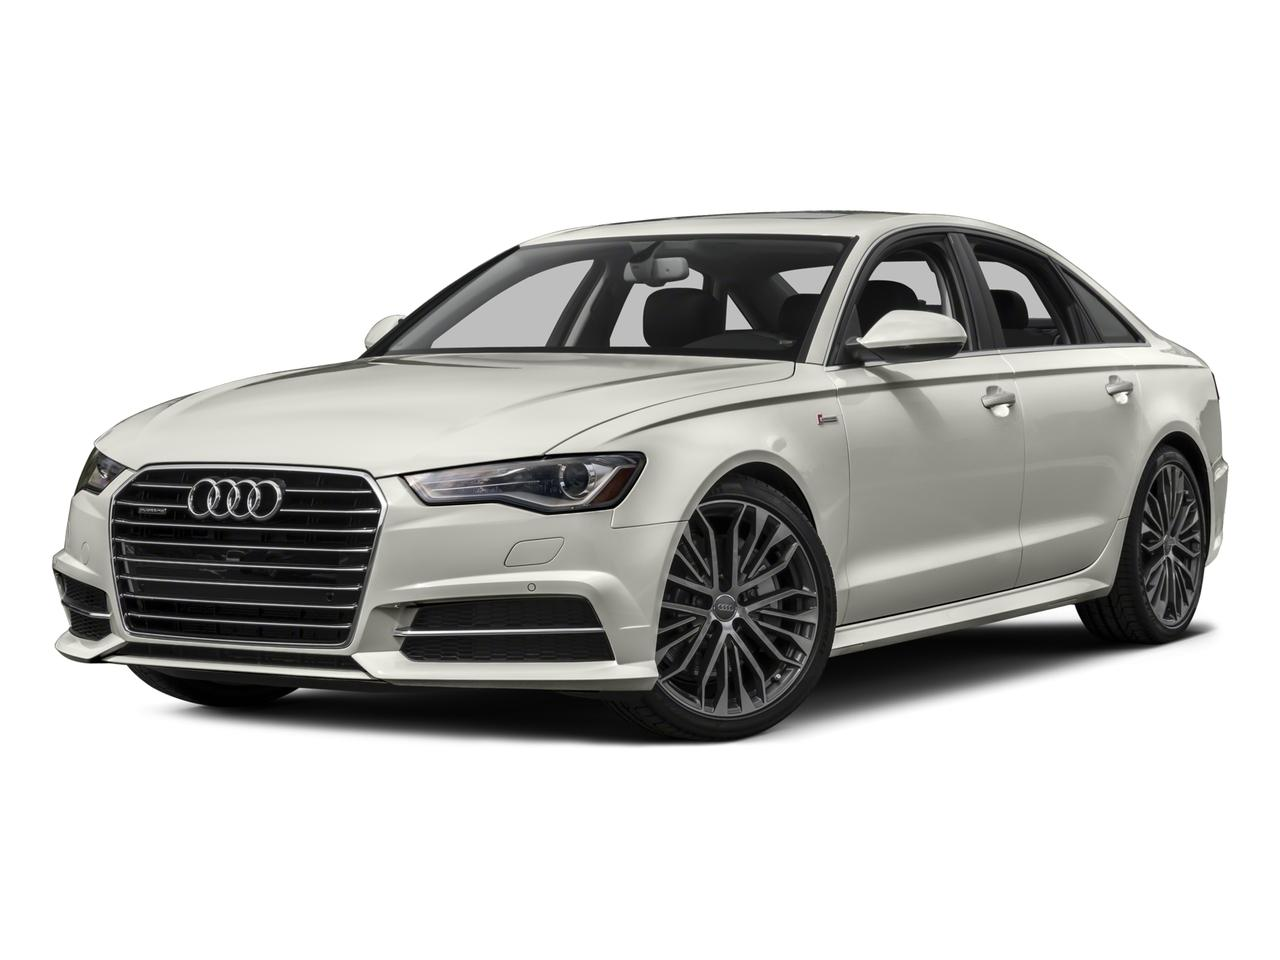 2016 Audi A6 Vehicle Photo in Austin, TX 78759